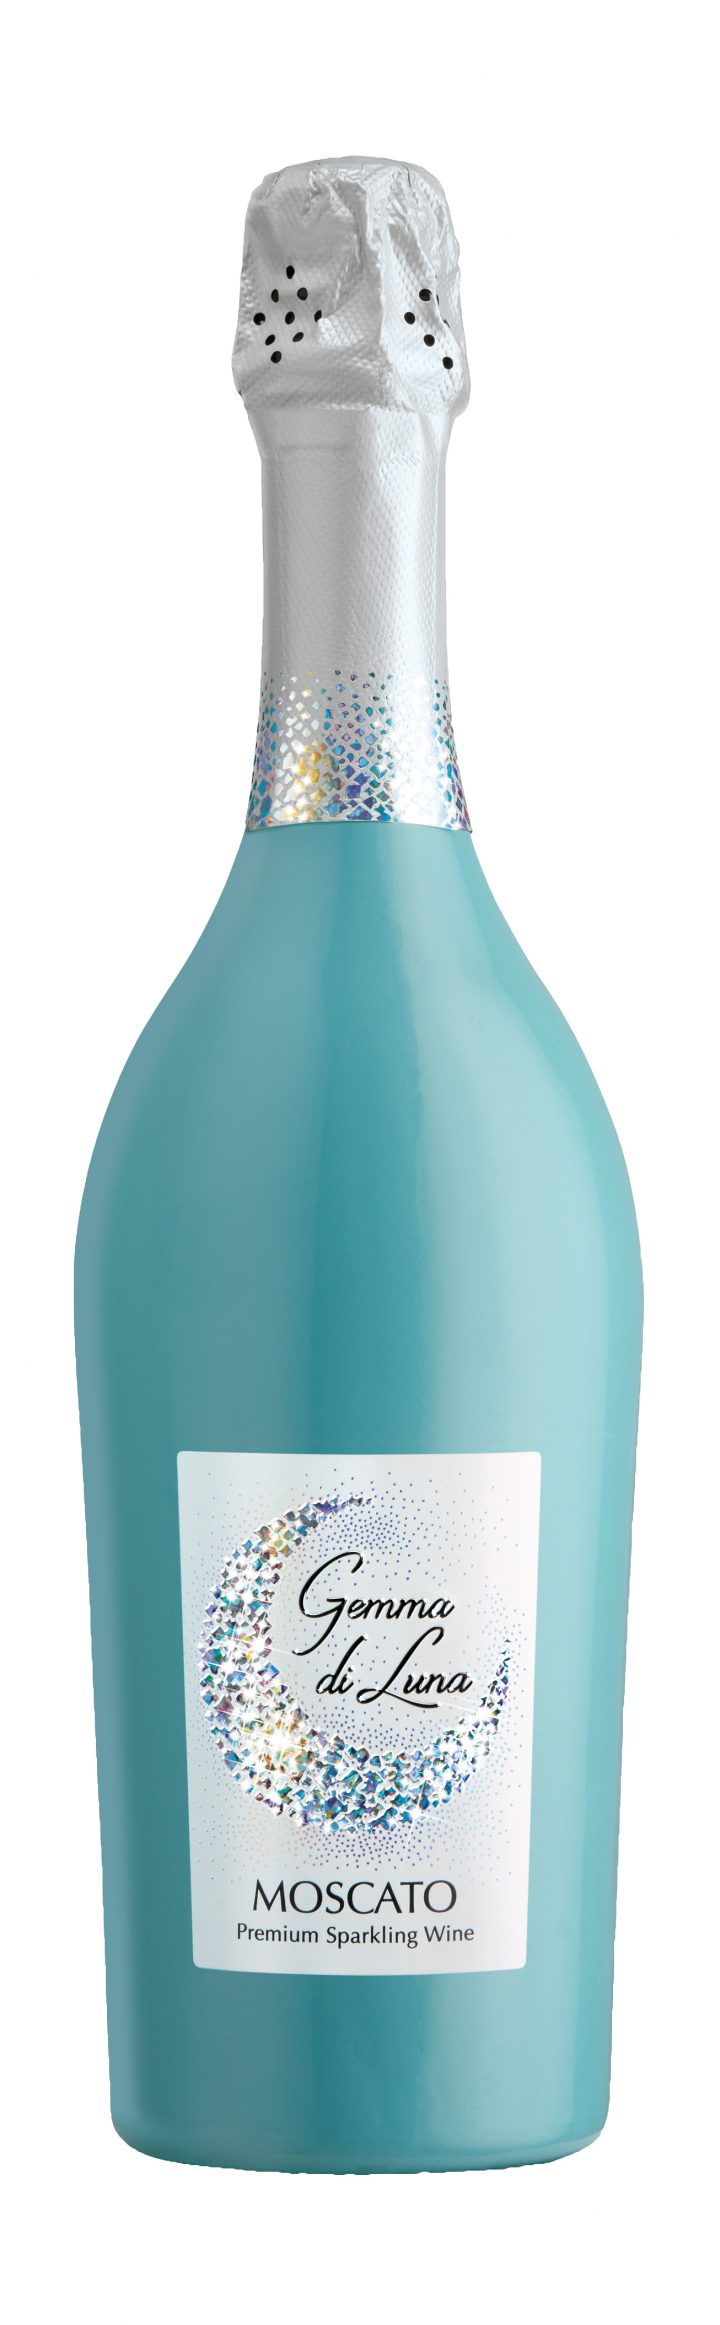 Enovation Brands launched Gemma di Luna Moscato this winter.